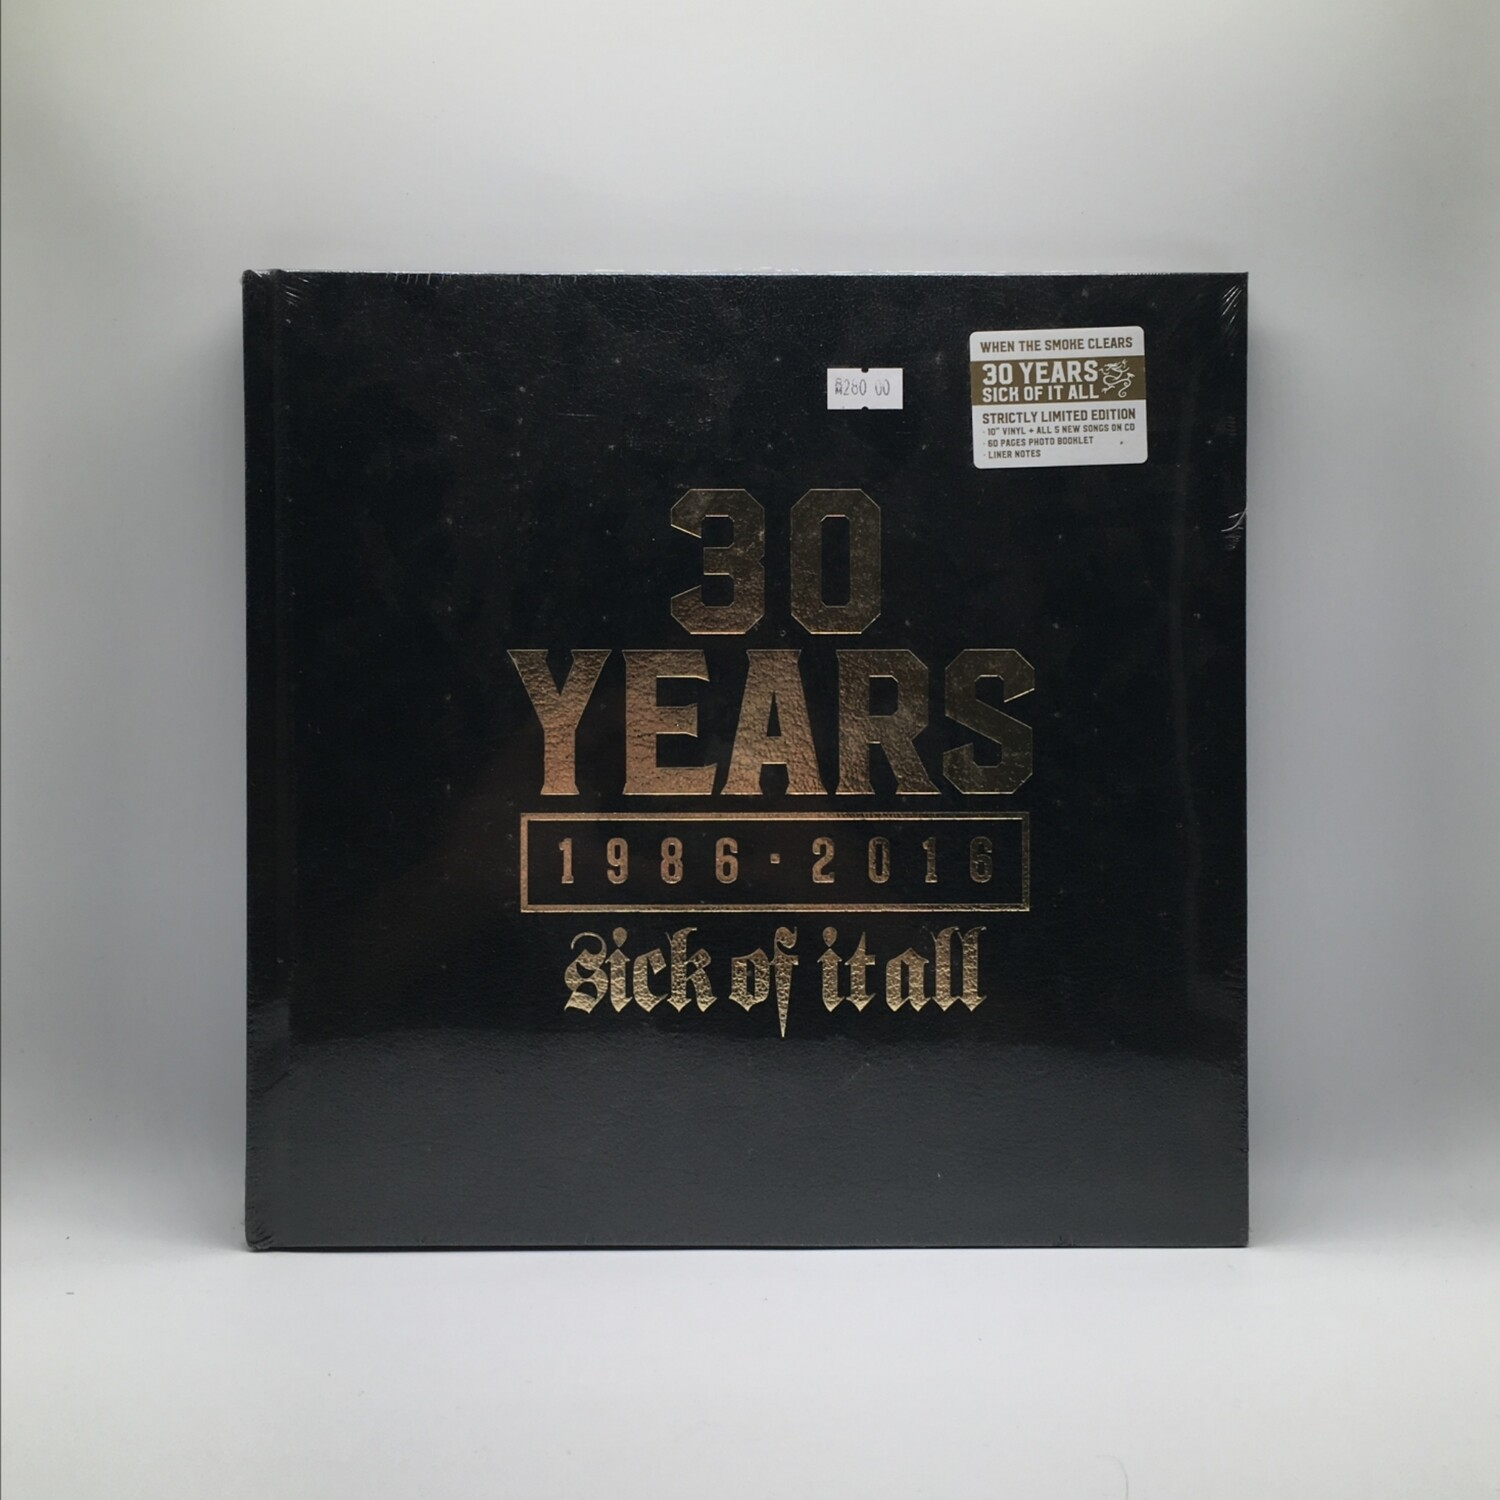 SICK OF IT ALL -WHEN COME SMOKE CLEAR: 30 YEARS(1986-2016)- 10 INCH EP + CD + PHOTOBOOK